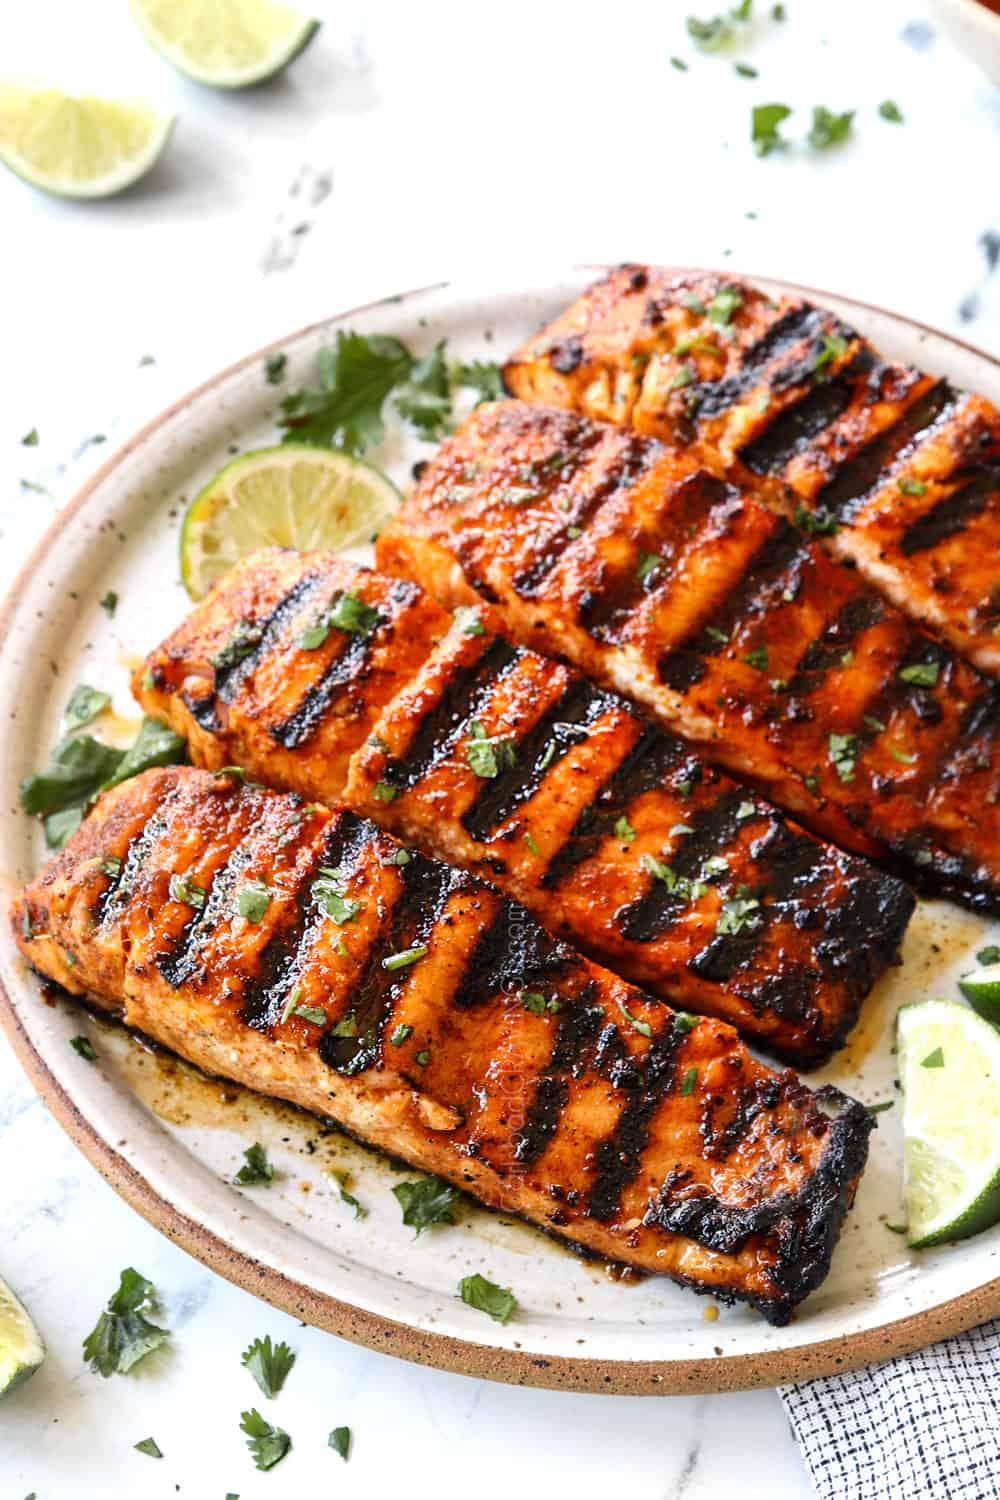 grilled salmon recipe on a plate showing how juicy it is